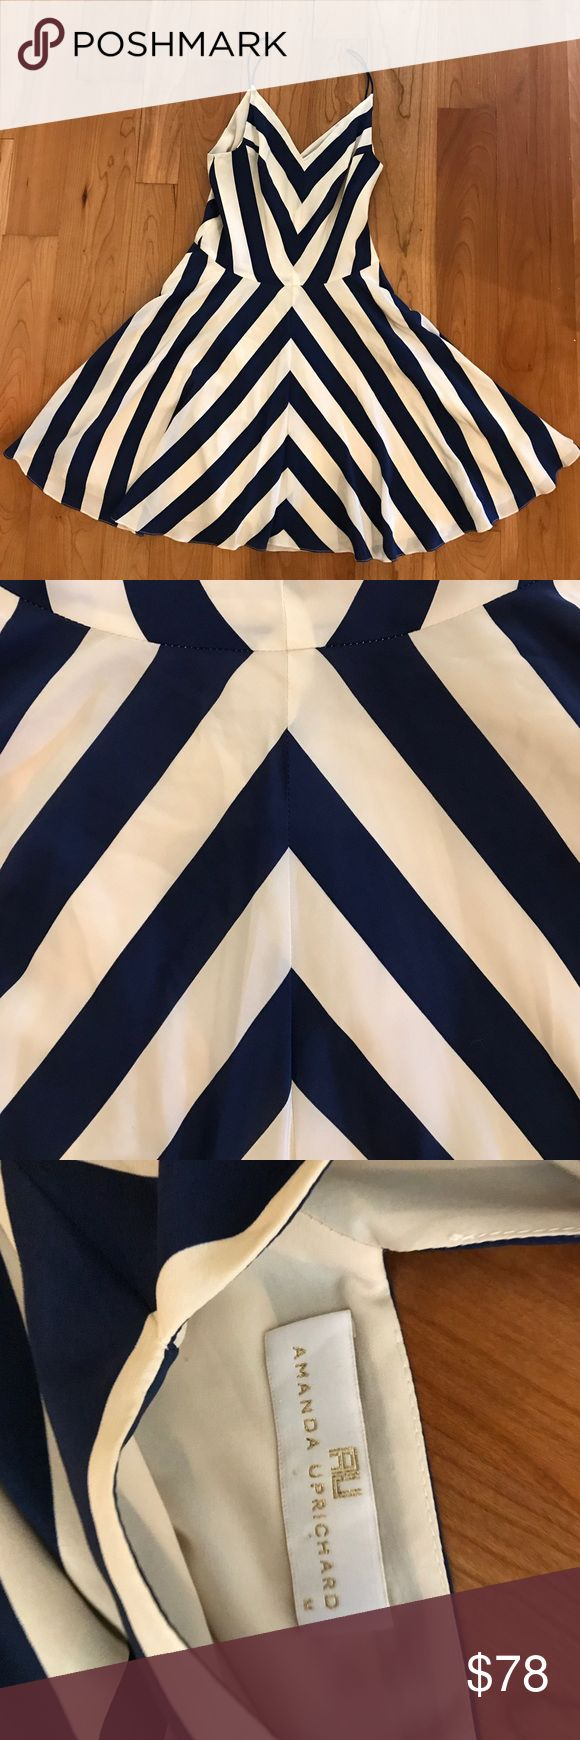 Amanda Uprichard navy chevron dress Only worn once to a wedding! I got so many compliments on this dress - it's so flowy and flattering. Sits above the knee - strappy and tighter at the waist. Amanda Uprichard Dresses Mini